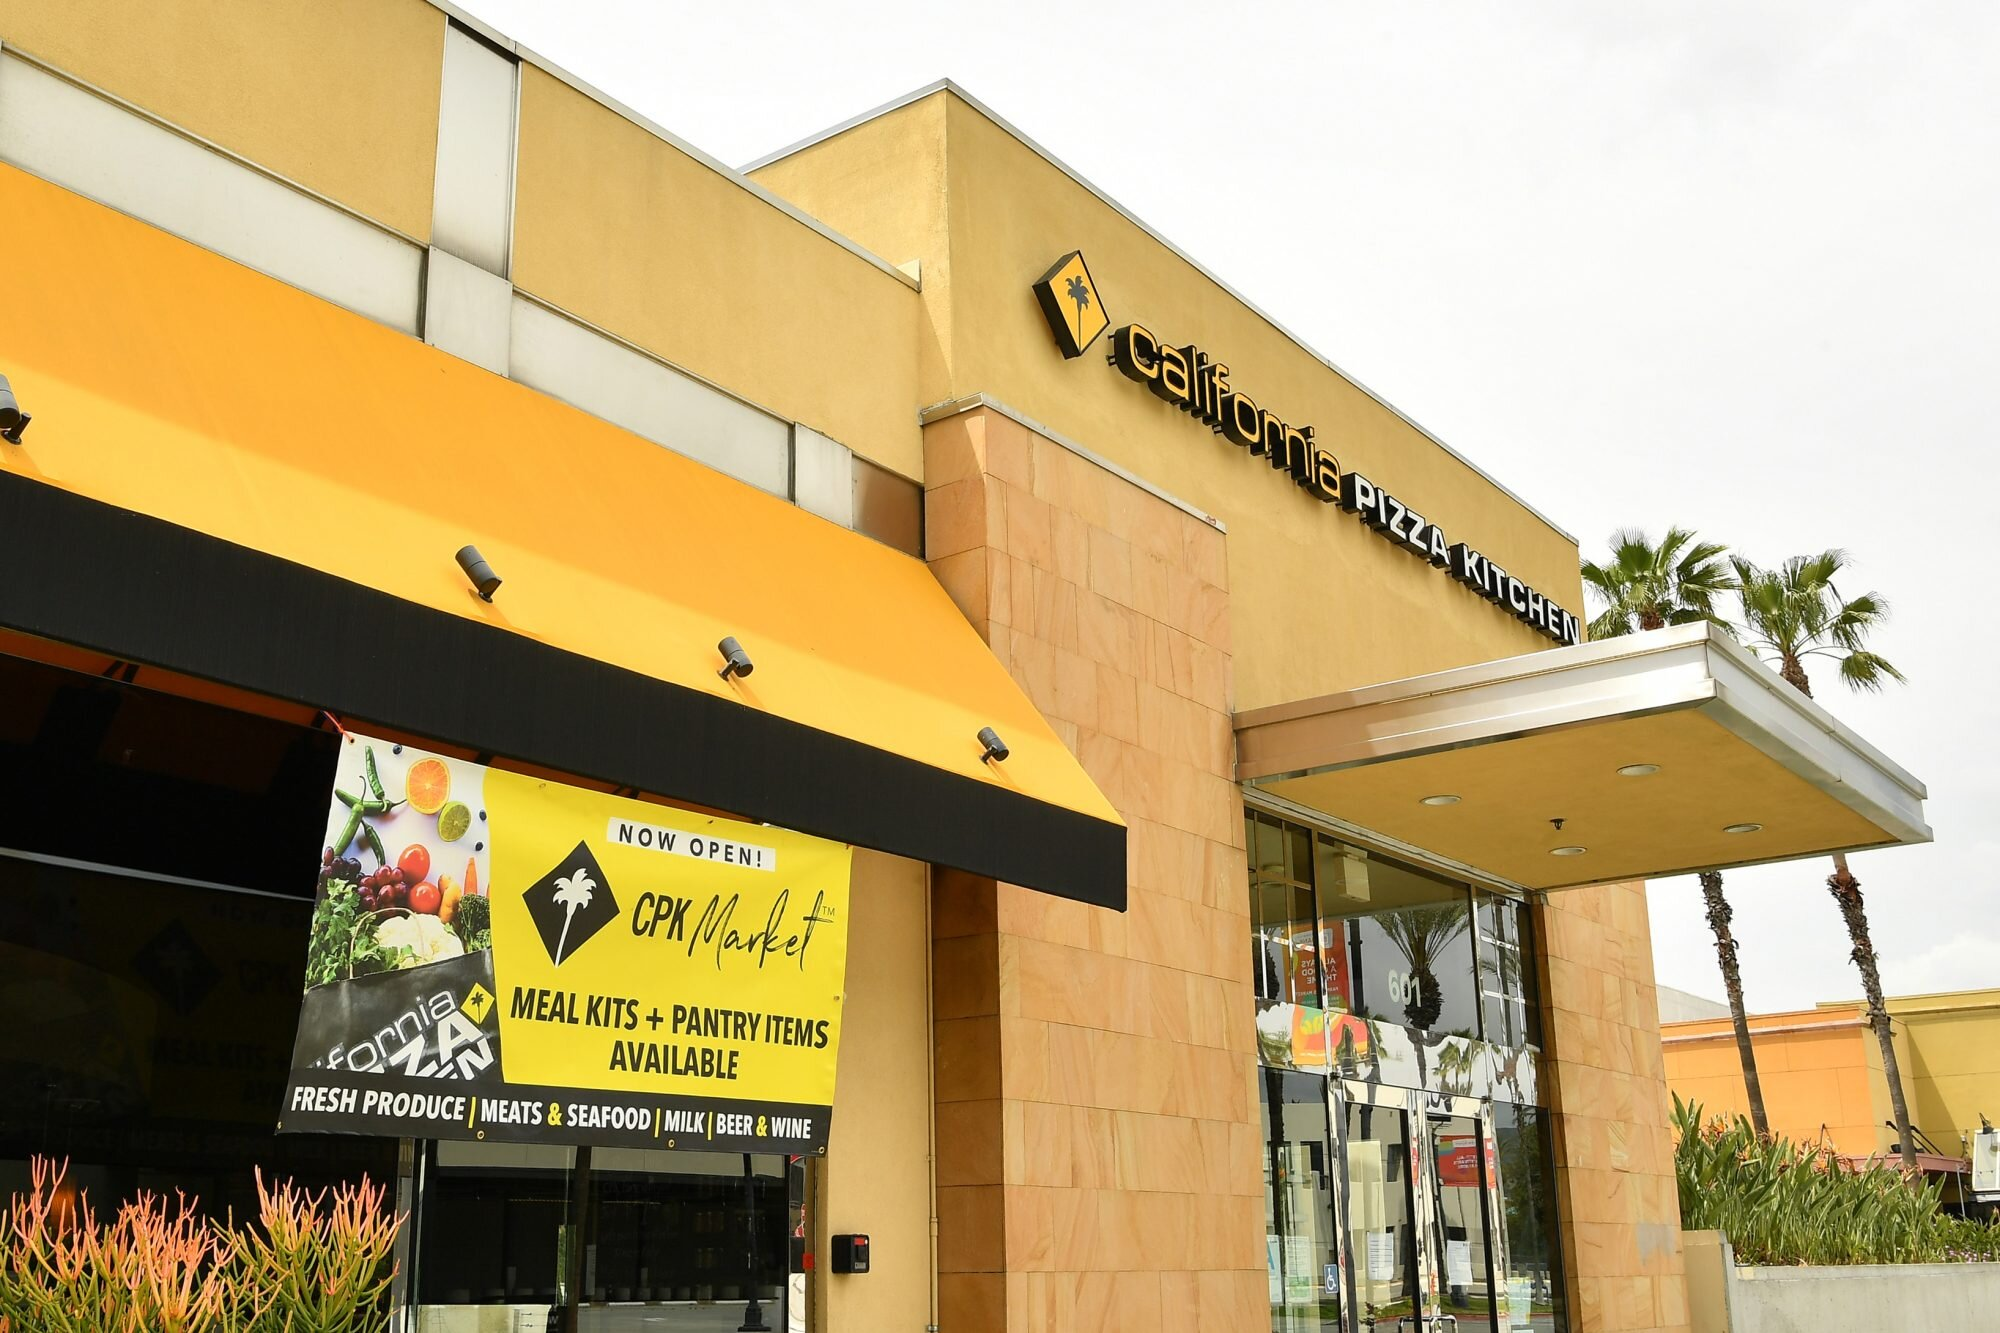 California Pizza Kitchen Files for Chapter 11 Bankruptcy